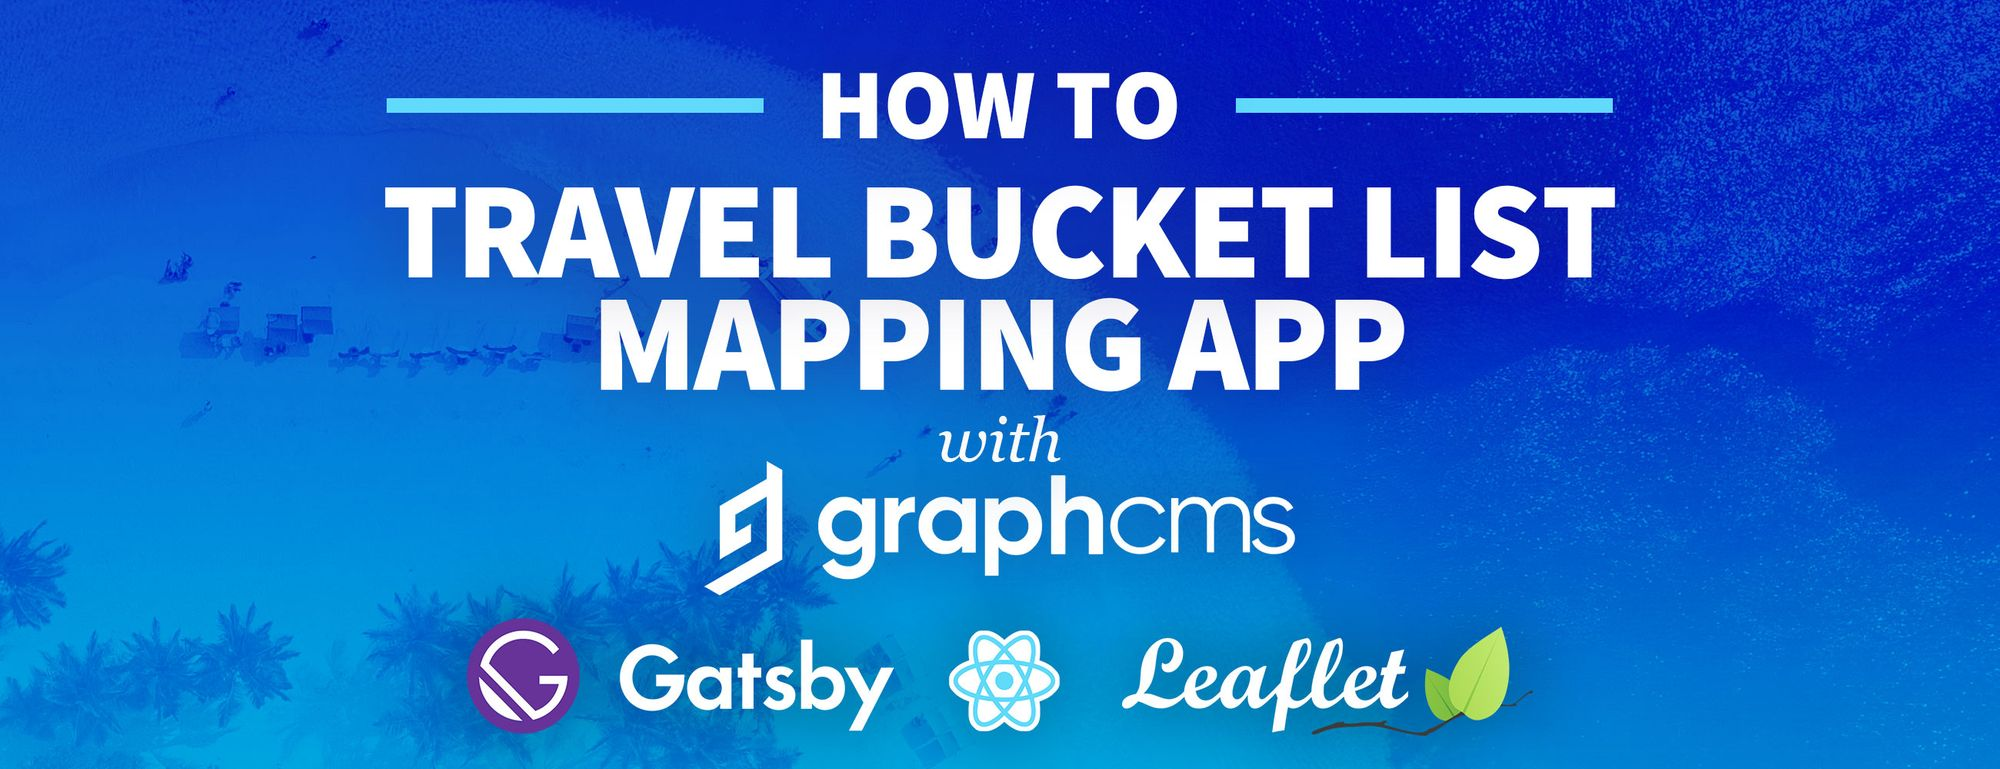 How to Create a Travel Bucket List Map with Gatsby, React Leaflet, & GraphCMS